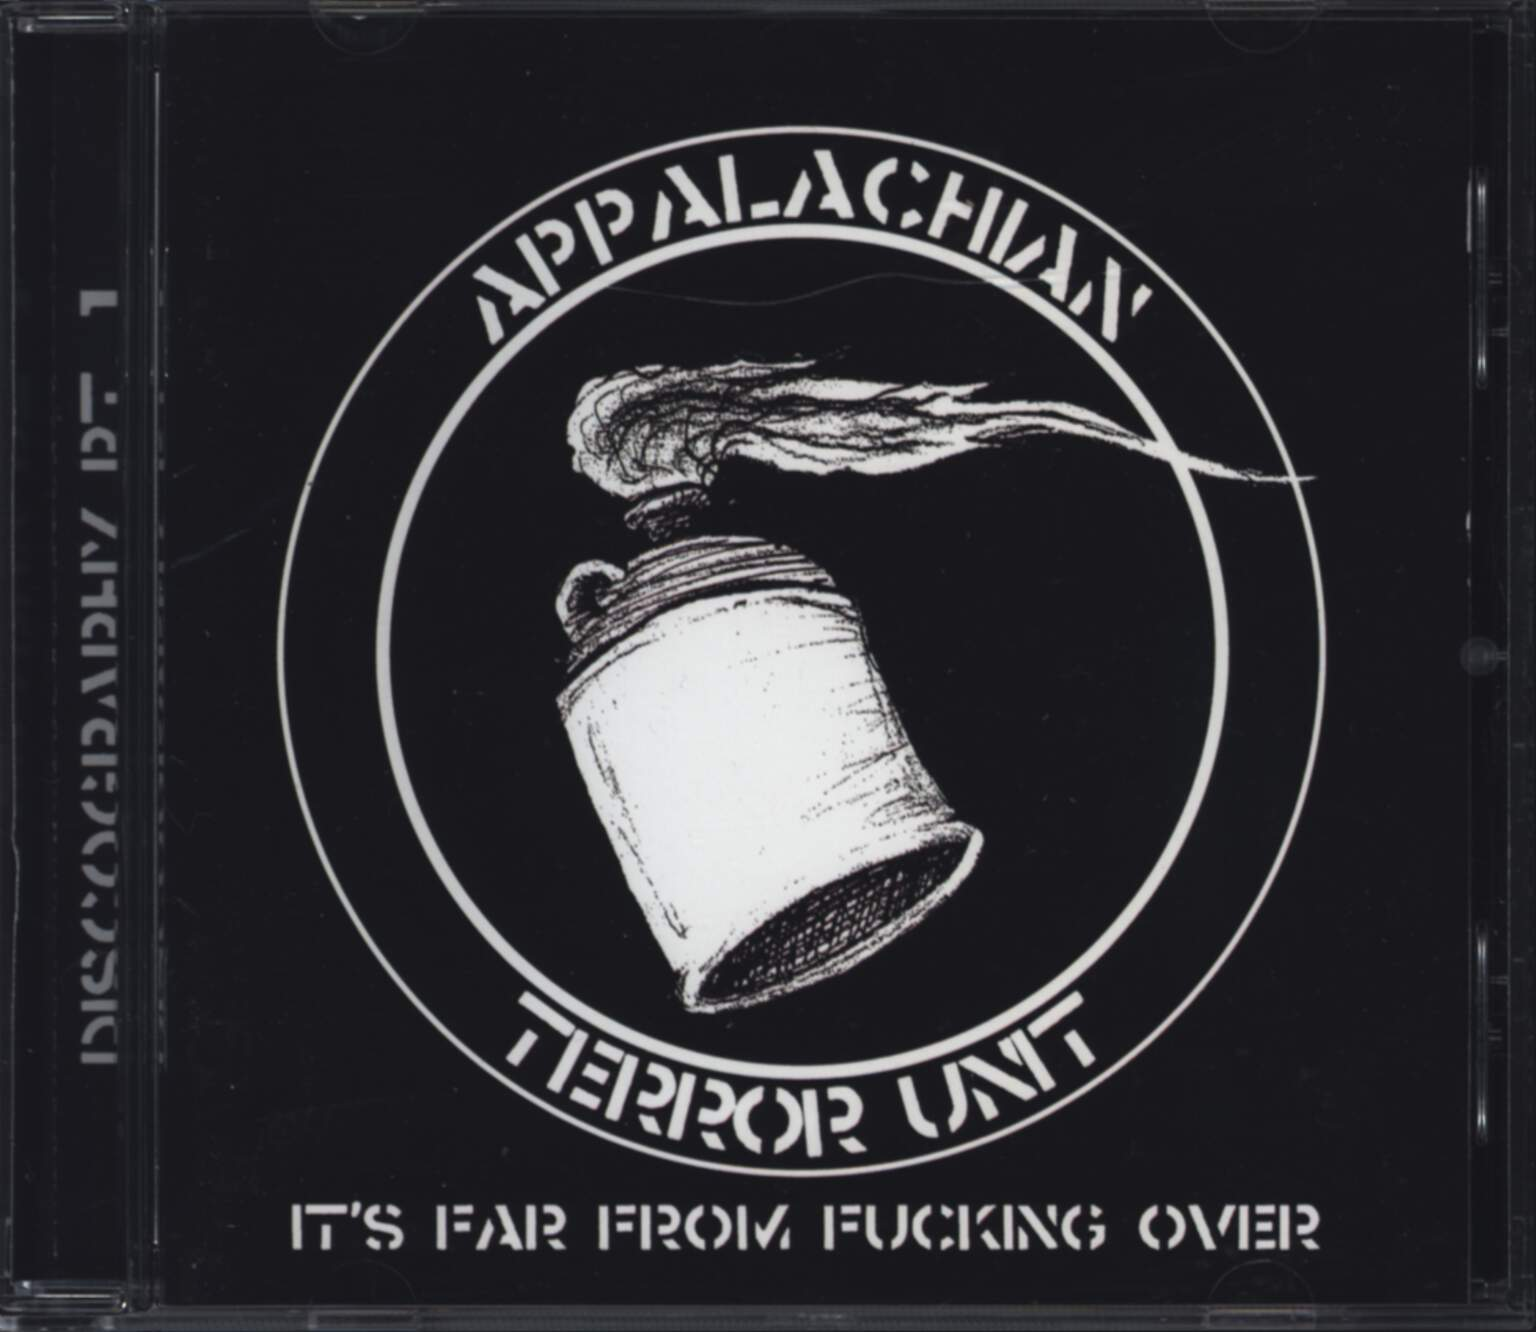 Appalachian Terror Unit: It's Far From Fucking Over, CD